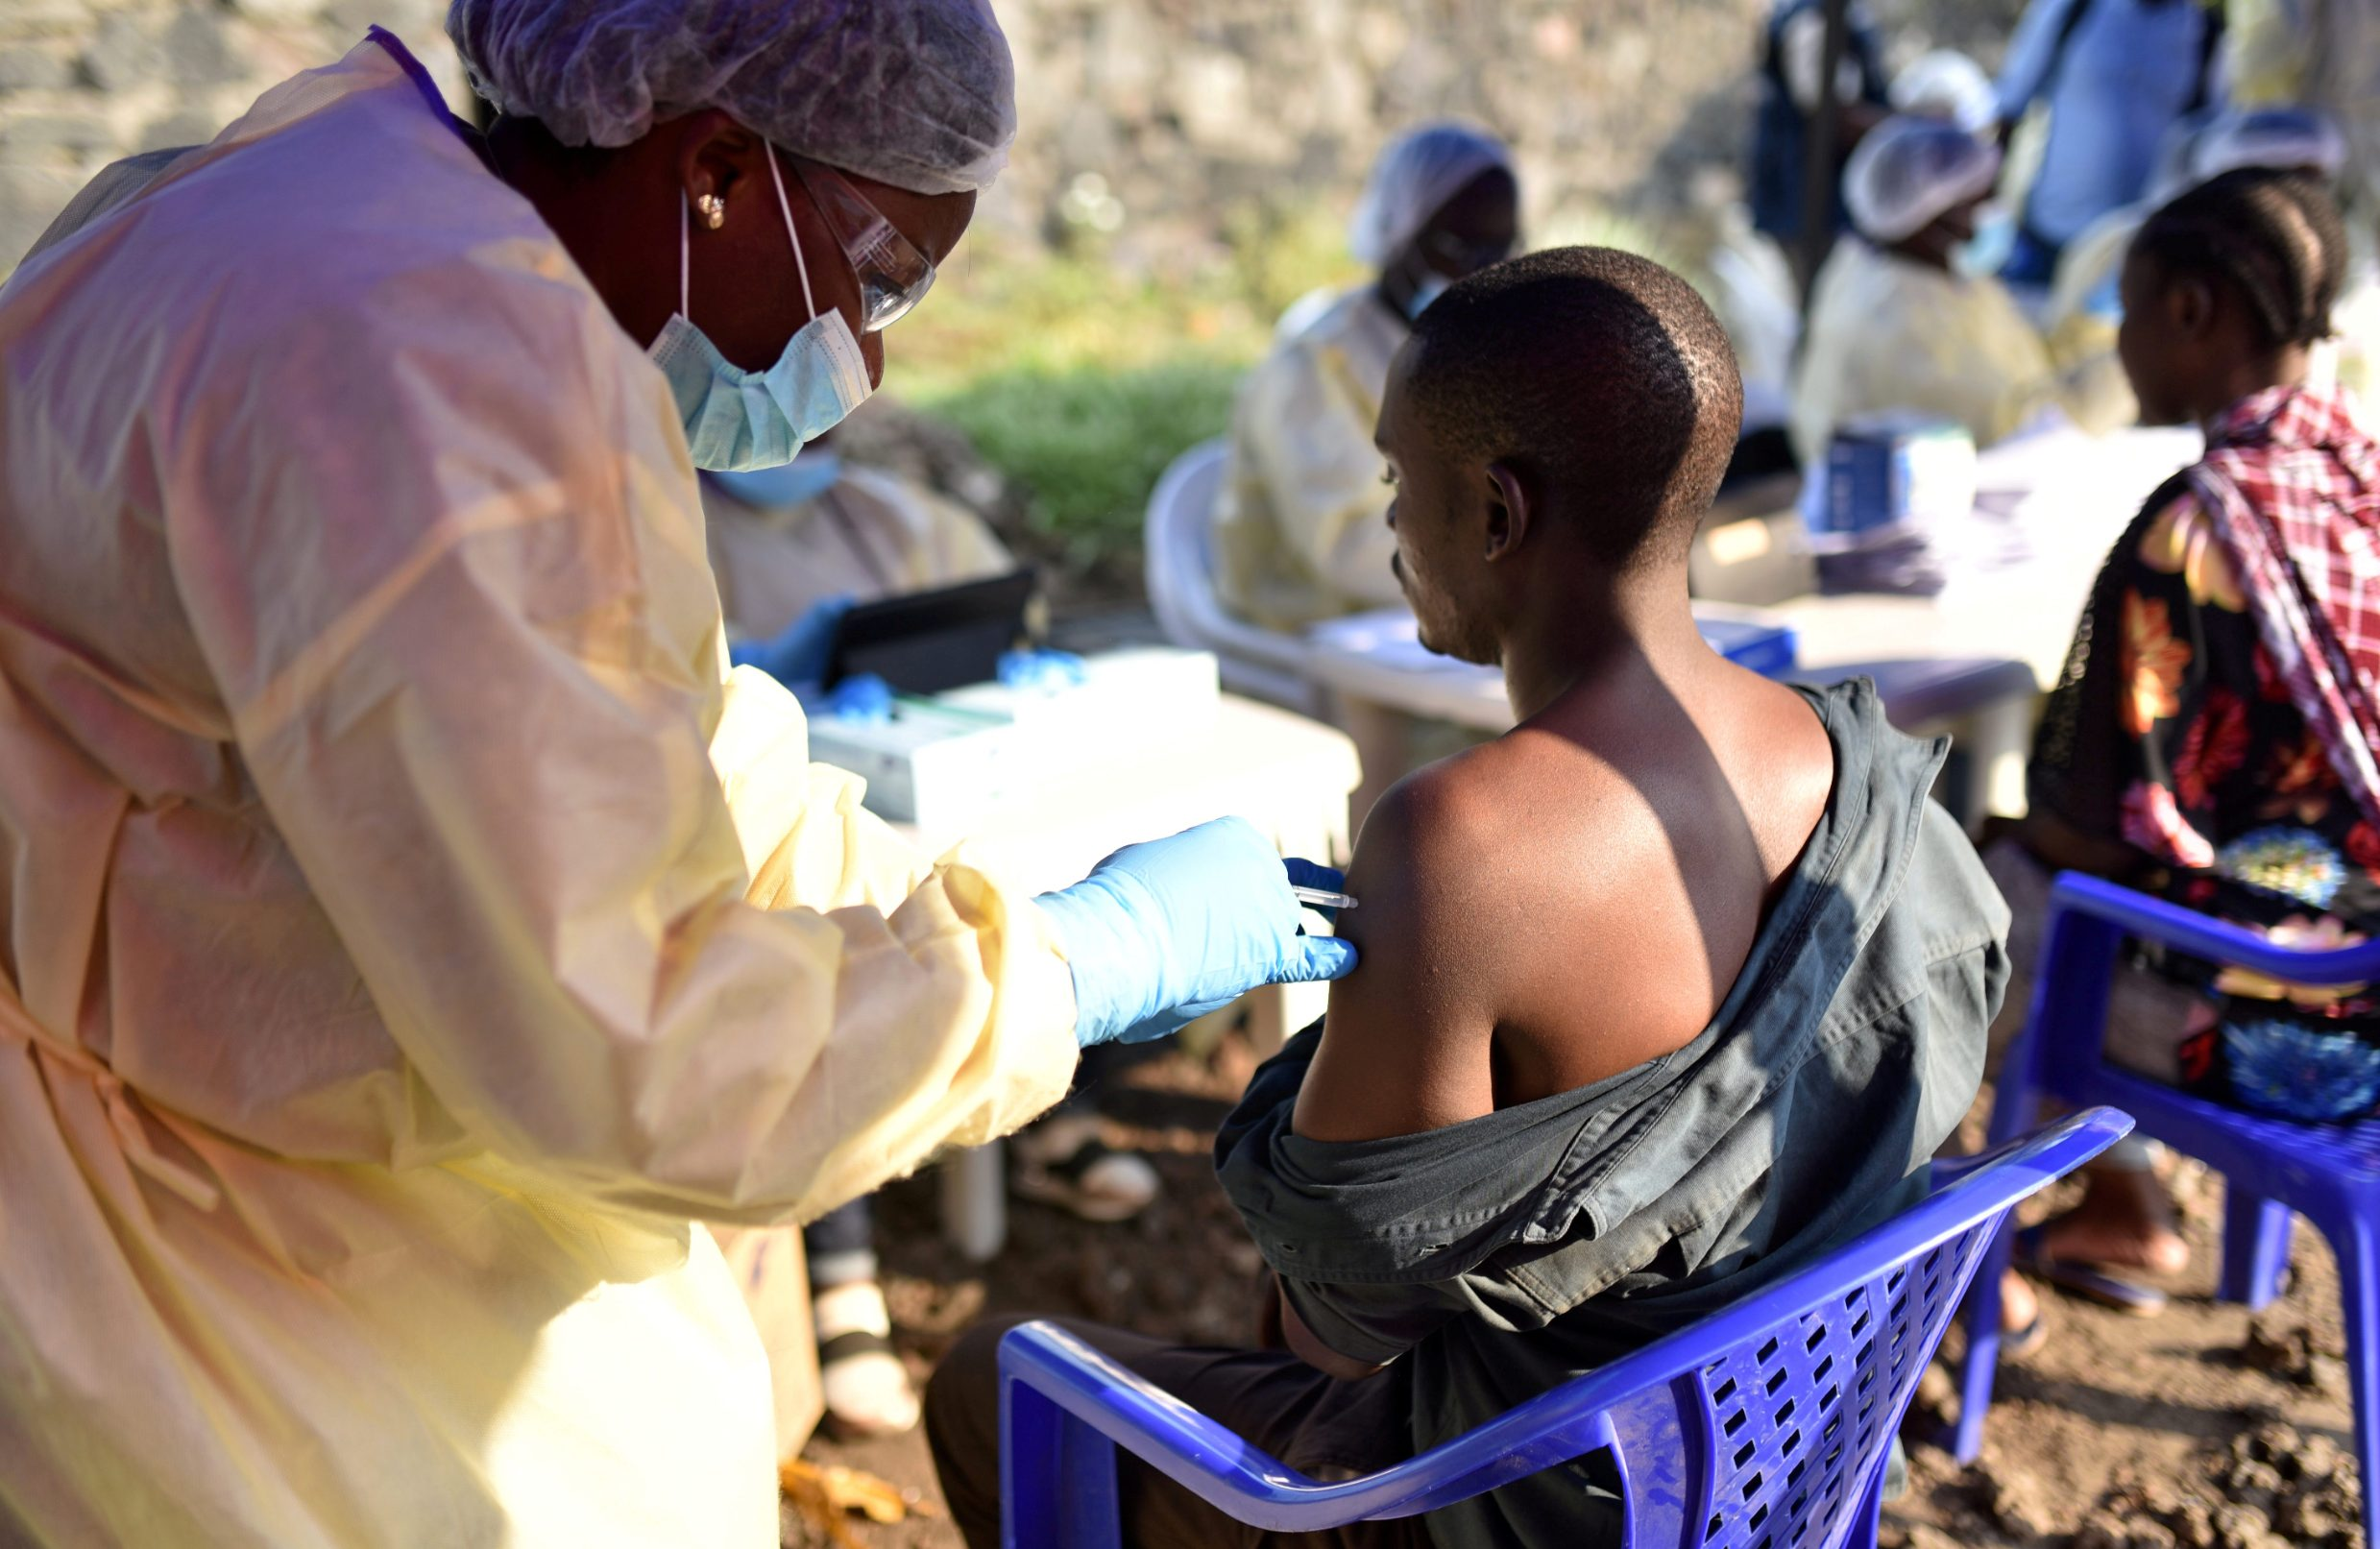 REFILE - CORRECTING STYLE A Congolese health worker administers an ebola vaccine to a man at the Himbi Health Centre in Goma, Democratic Republic of Congo, July 17, 2019. REUTERS/Olivia Acland